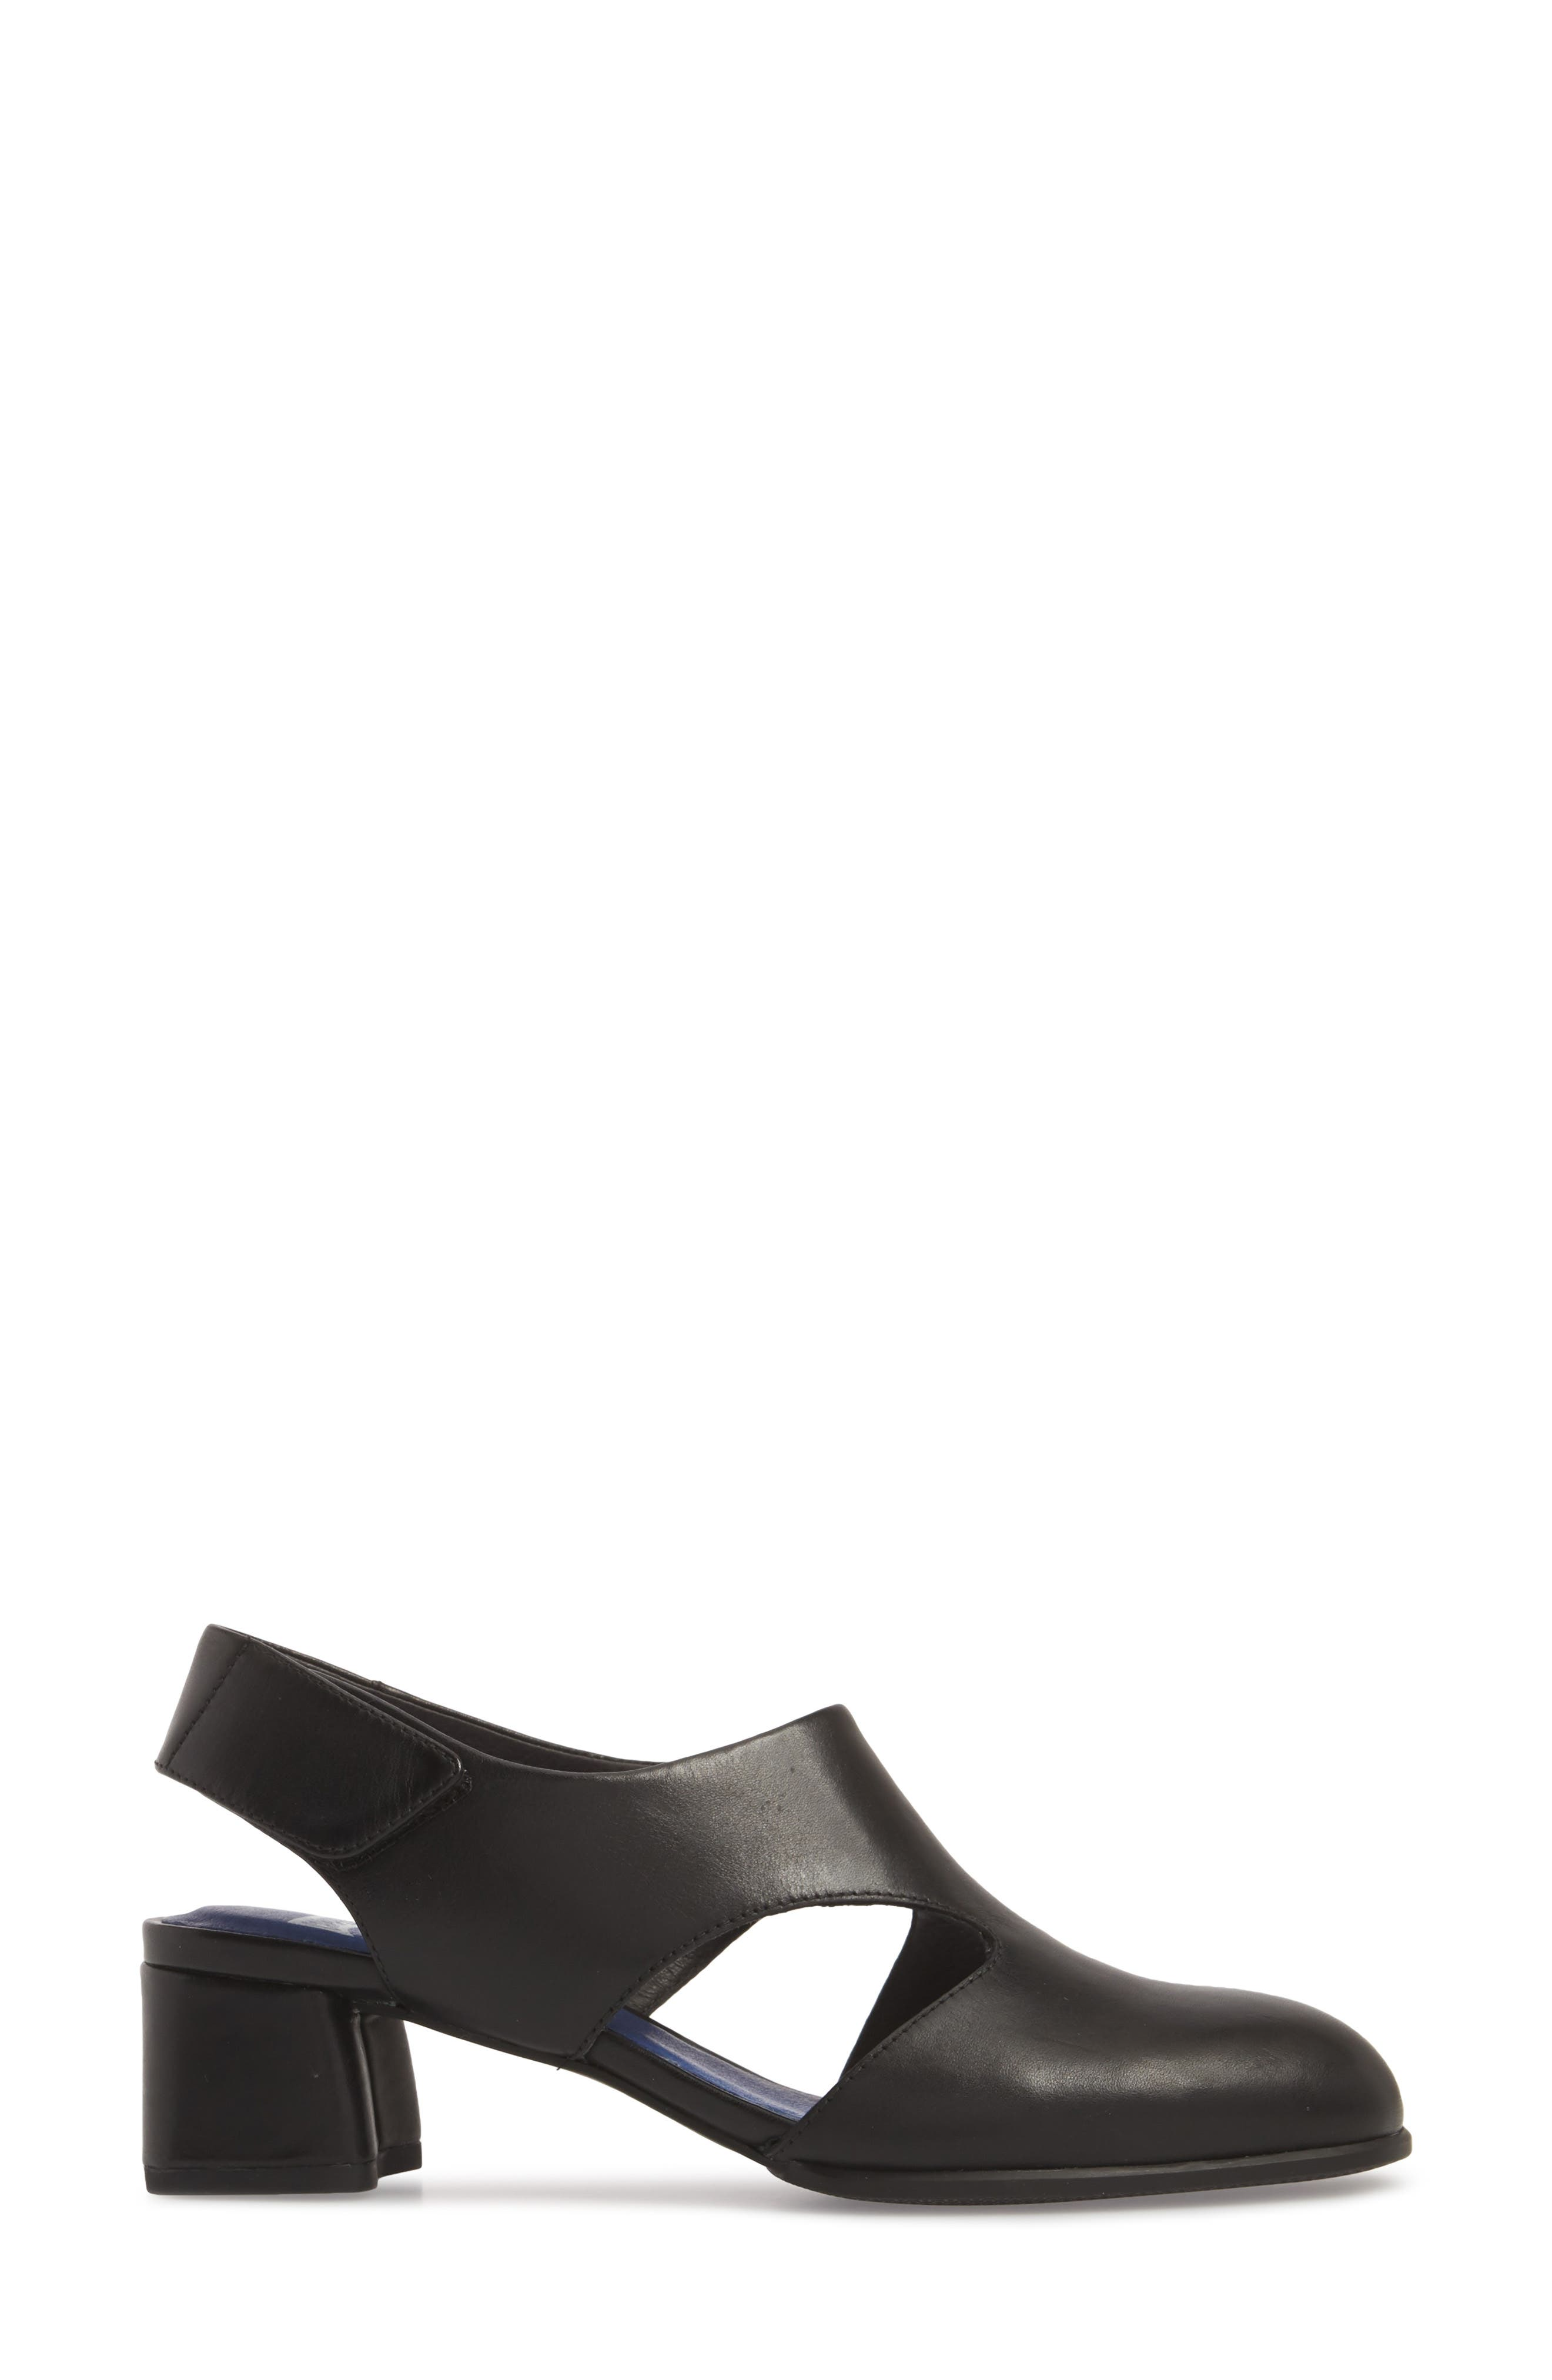 TWS Slingback Pump,                             Alternate thumbnail 3, color,                             BLACK LEATHER